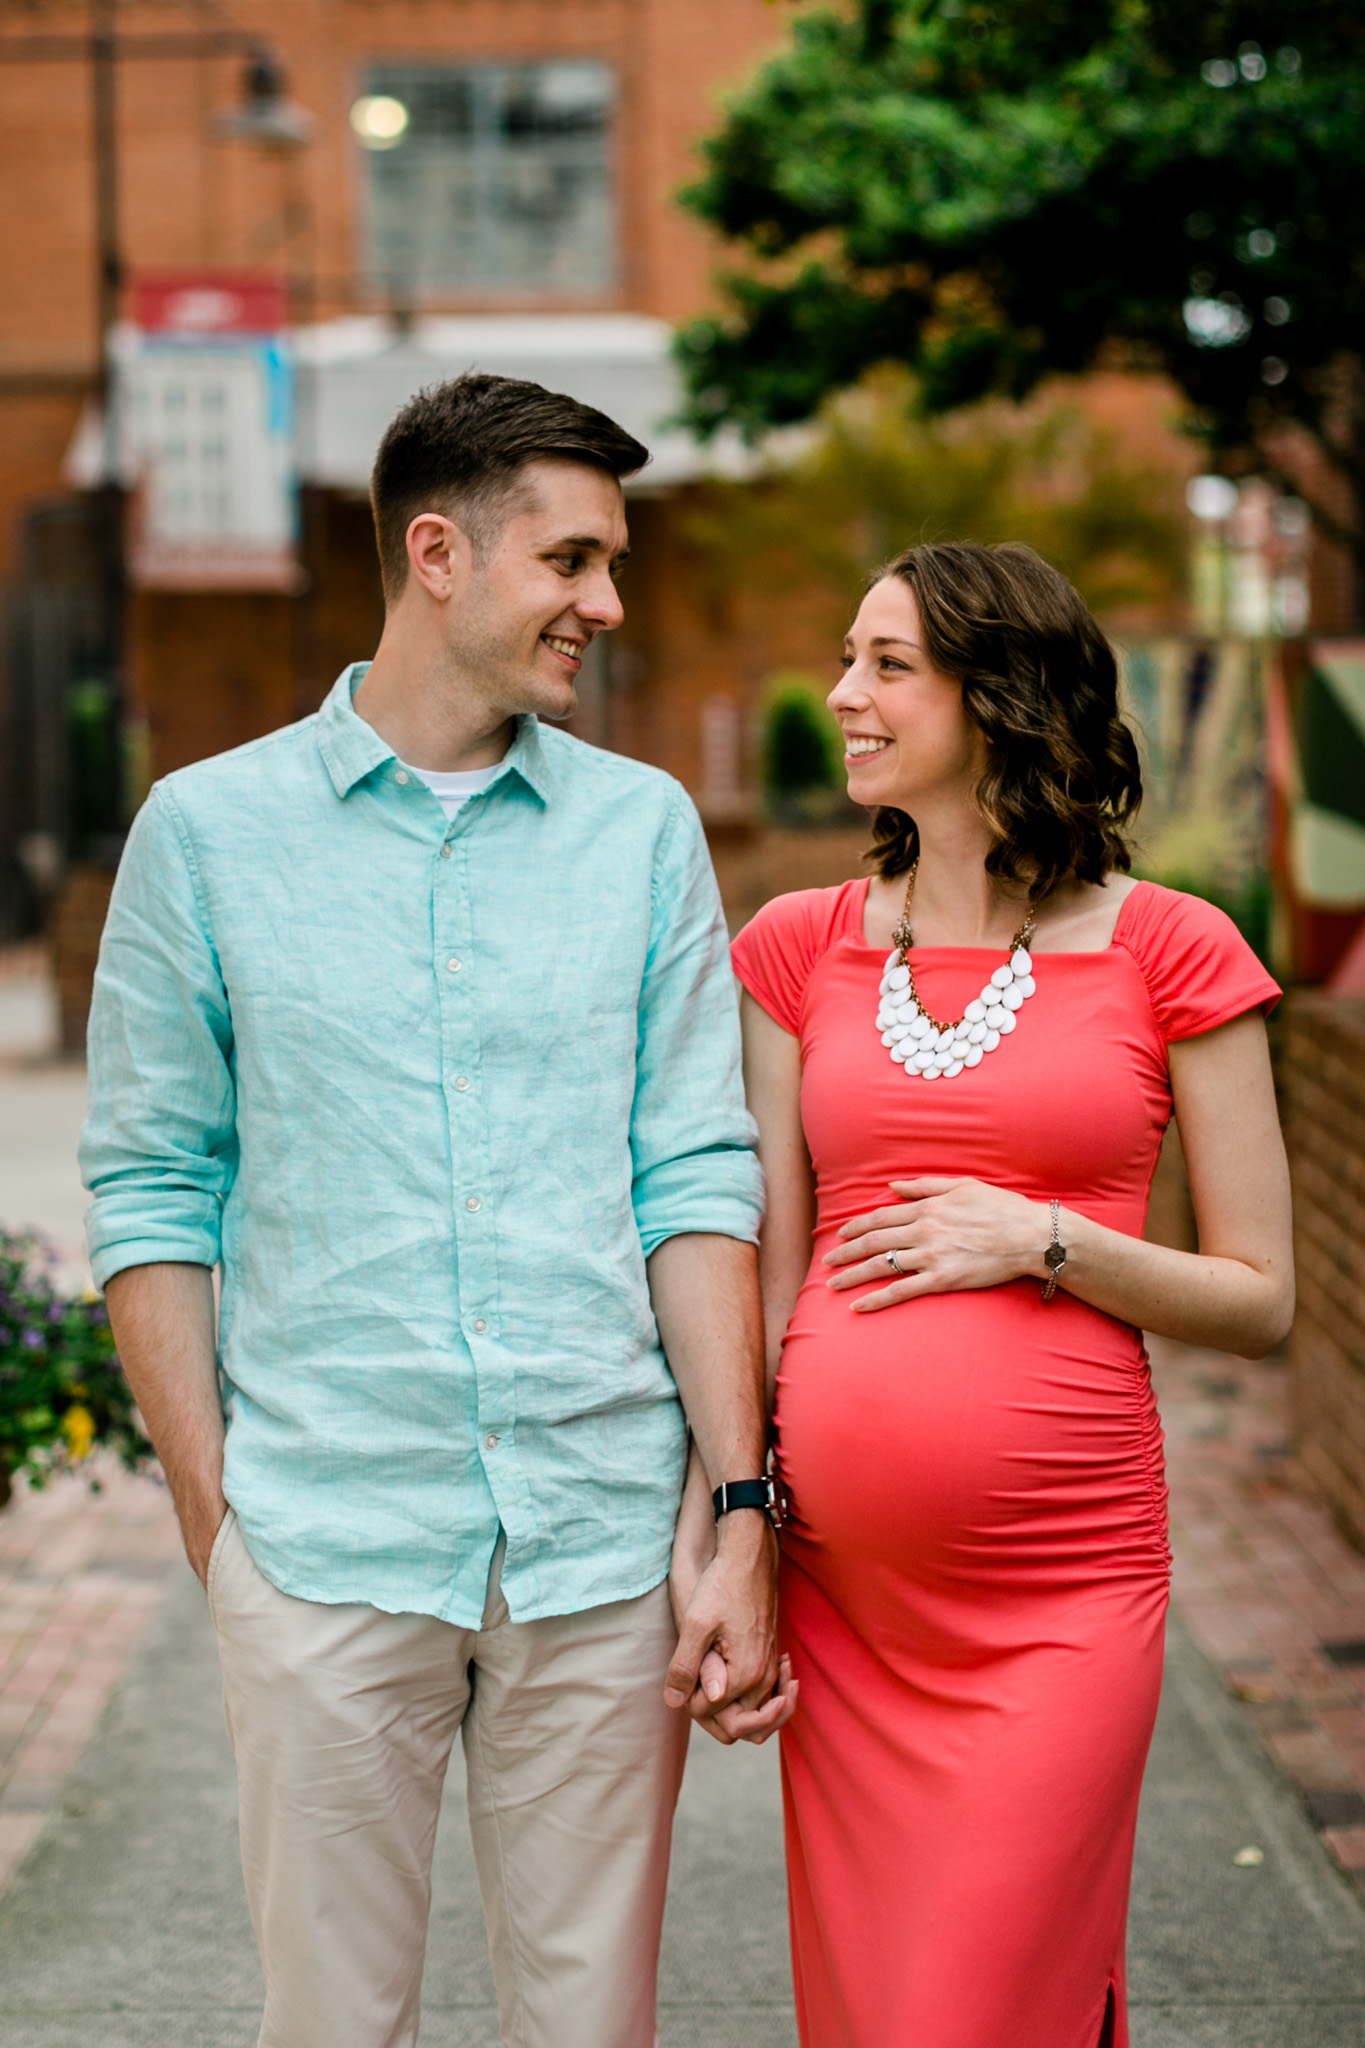 Couple smiling at each other and holding hands | Durham Newborn Photographer | By G. Lin Photography